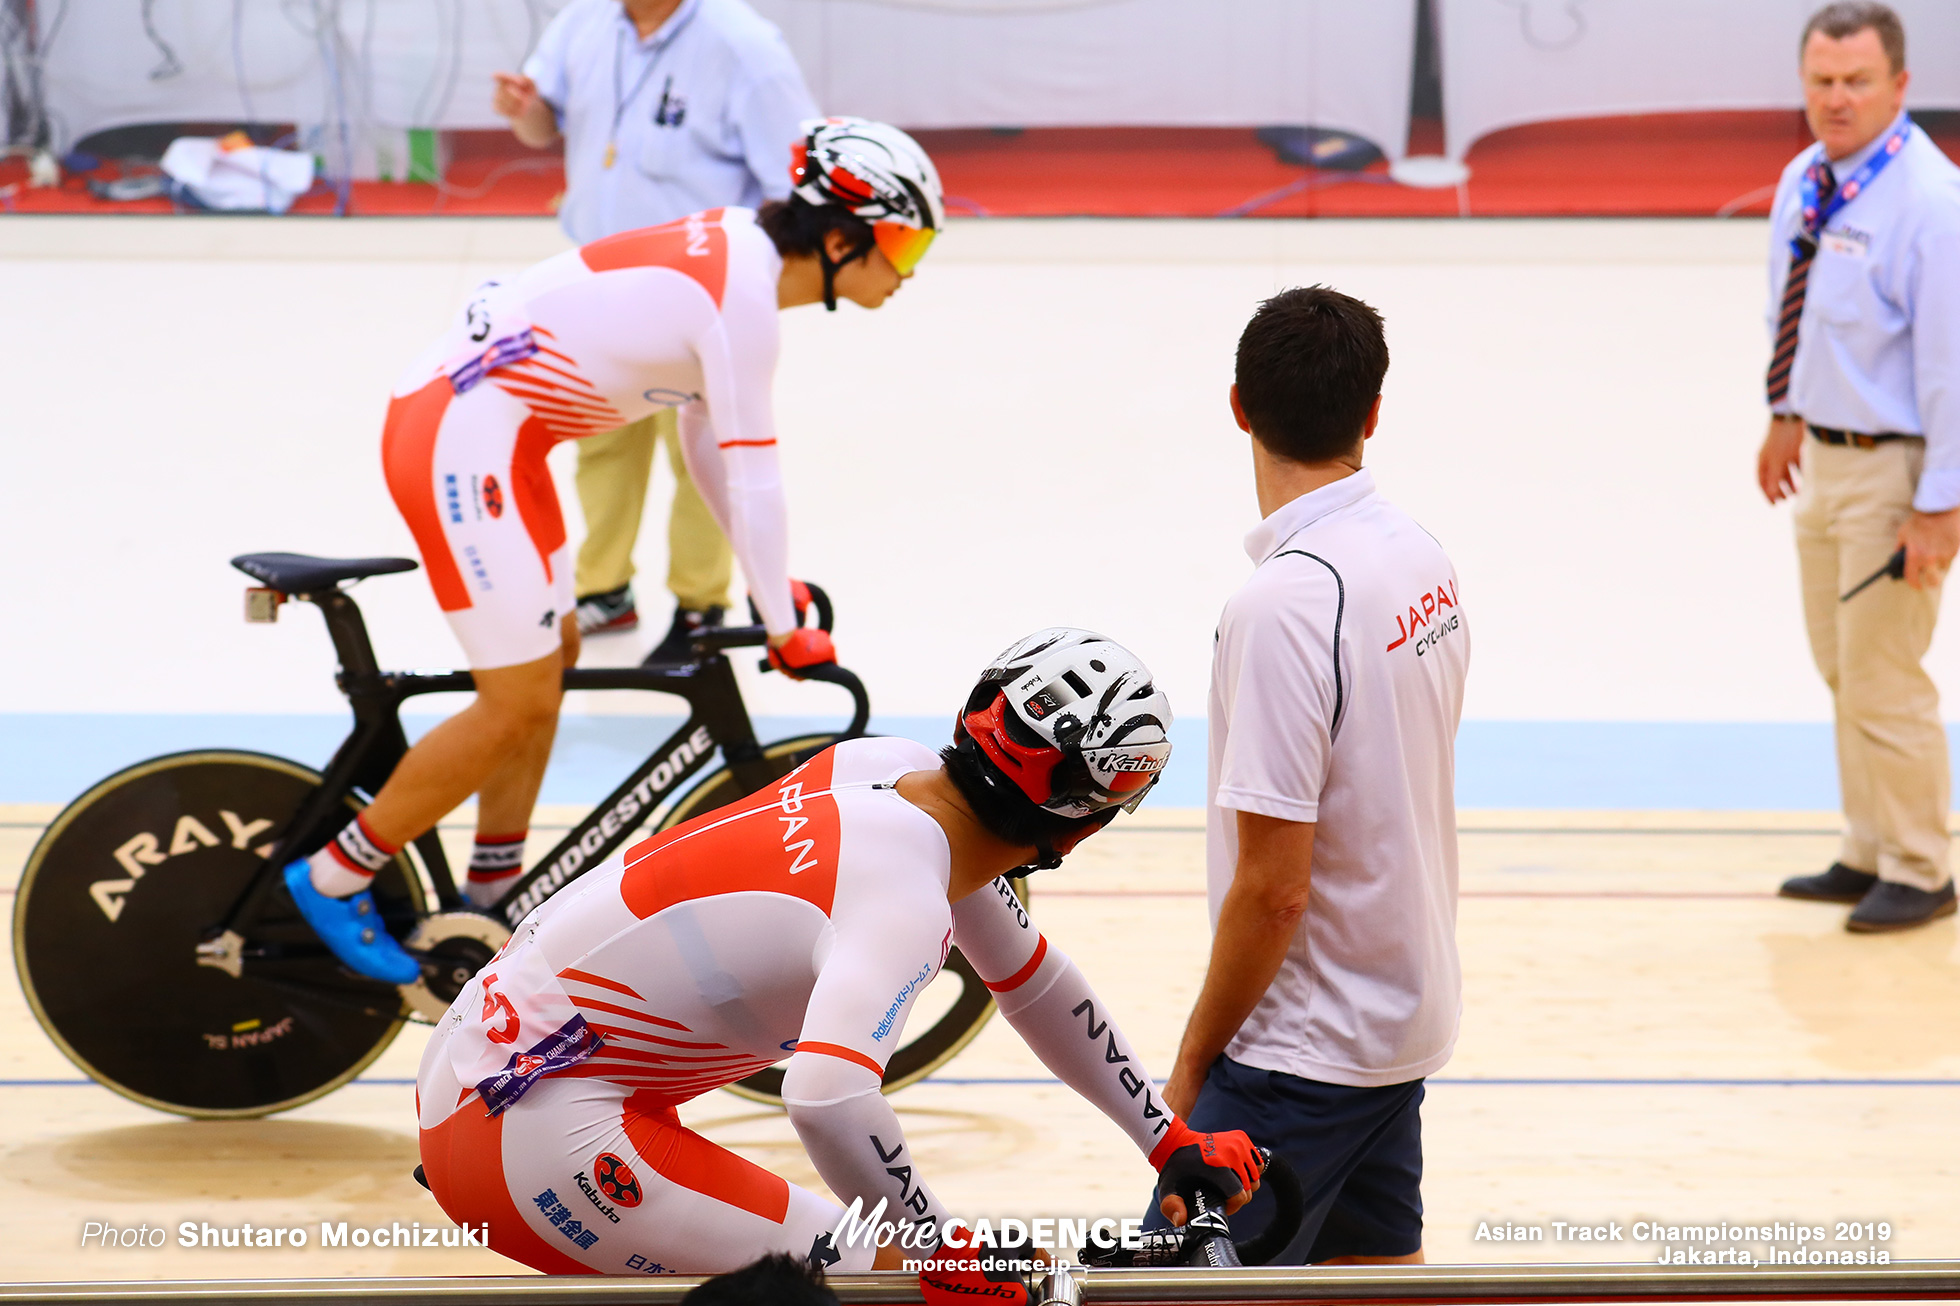 Men's Elite Madison / Asian Championships Track 2019 Jakarta